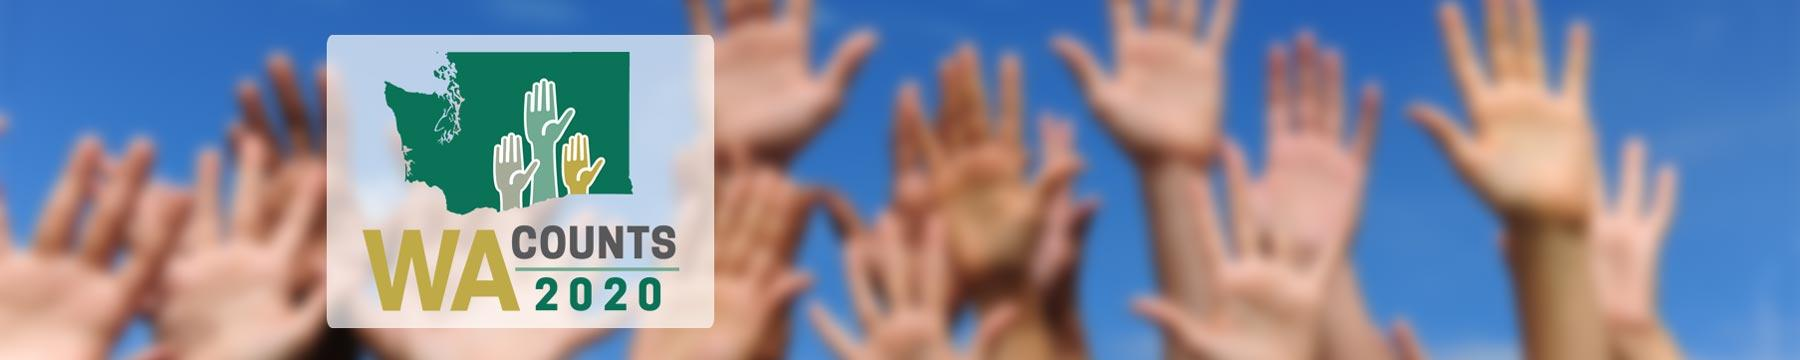 """Logo reading """"WA Counts 2020"""" over an image of hands stretched high in the air"""